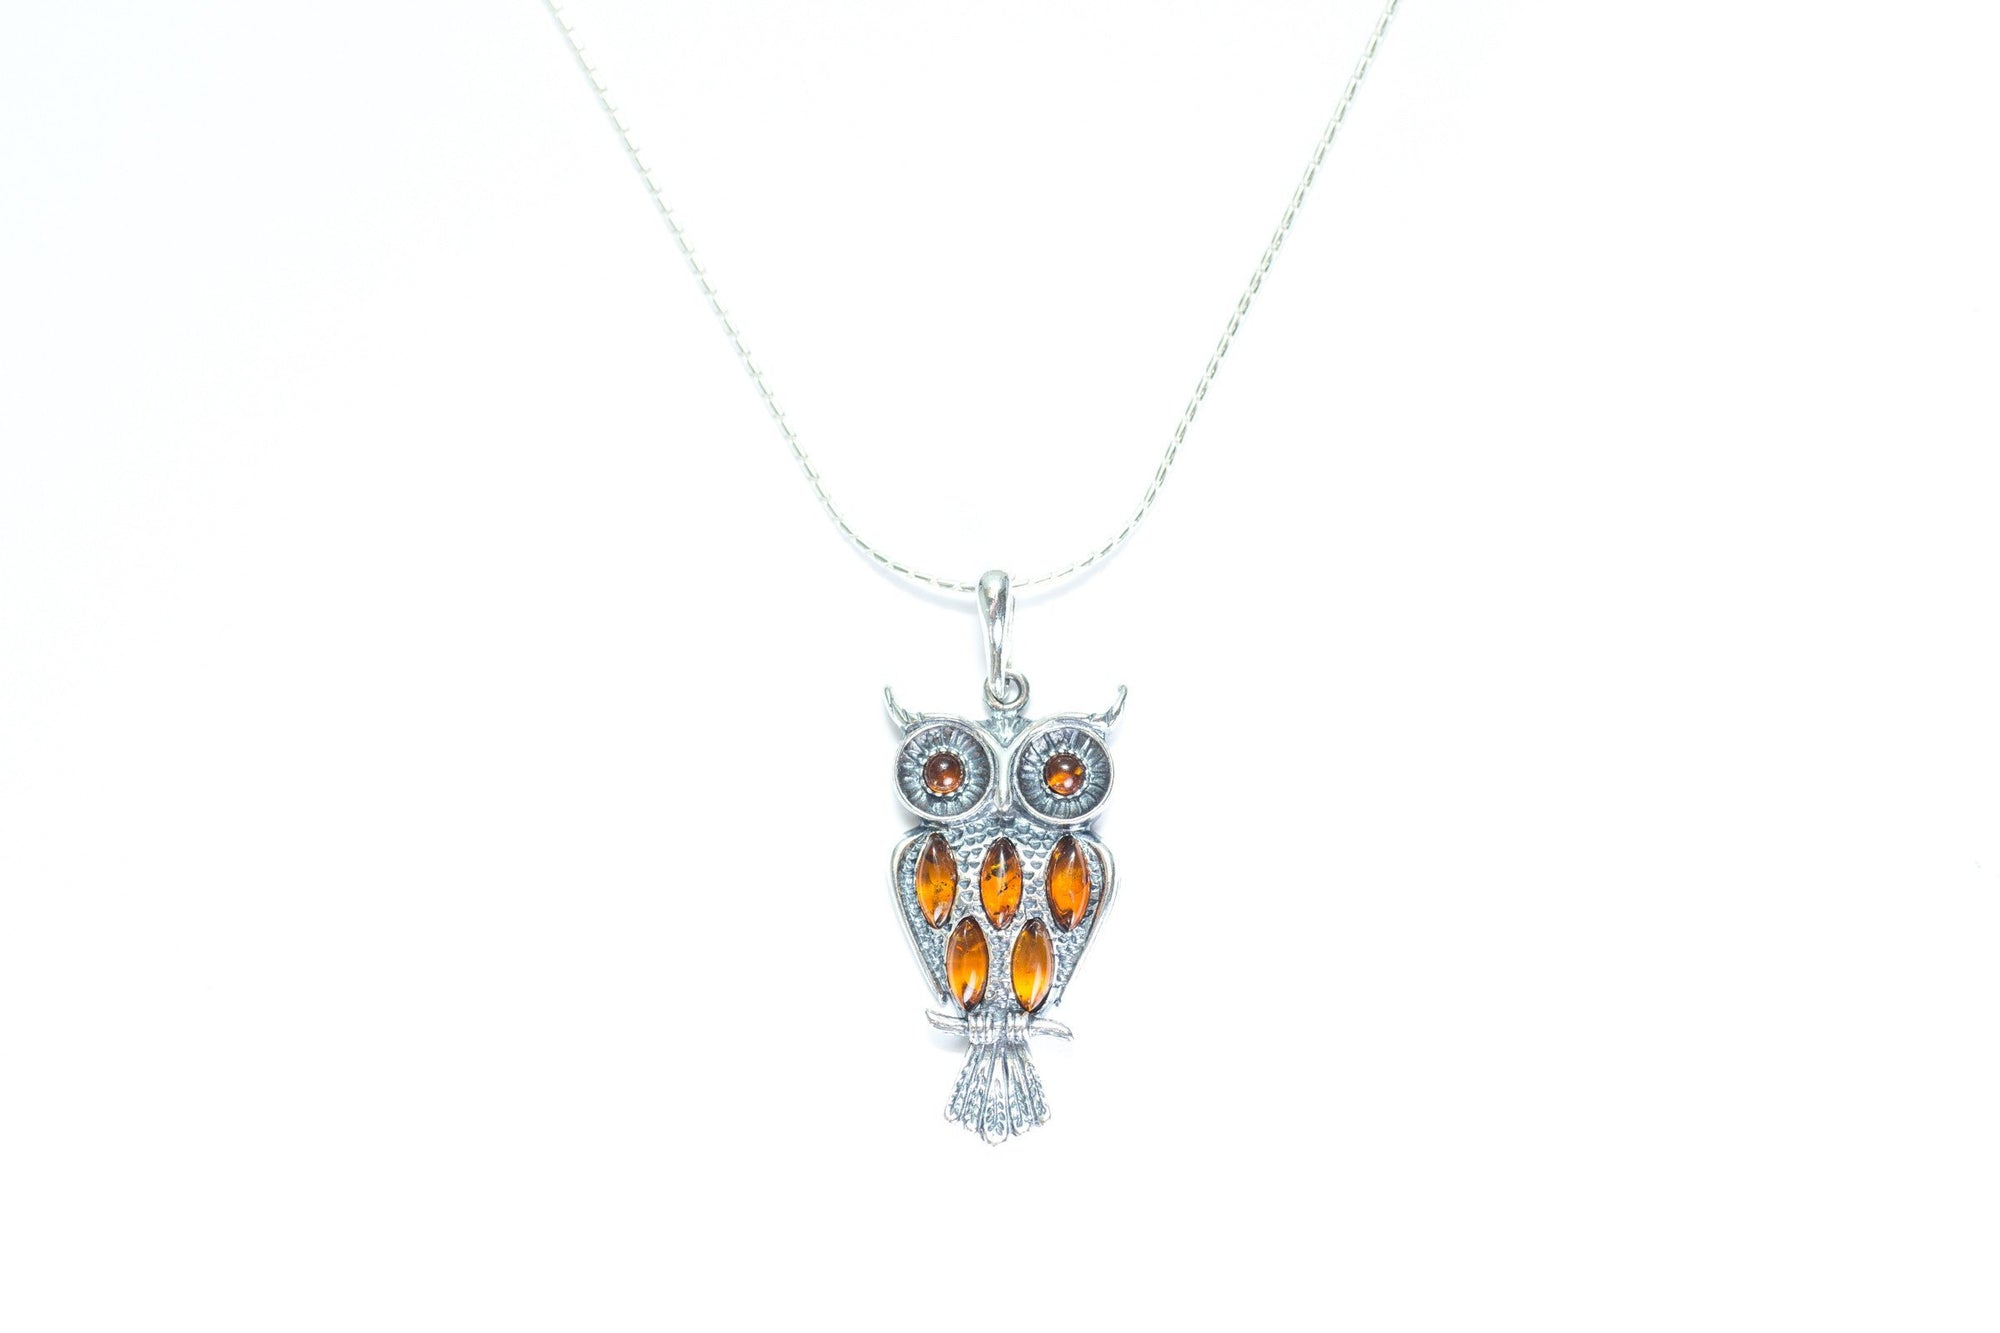 necklace hi pendant res silver sapphire burnished teal rickis owl